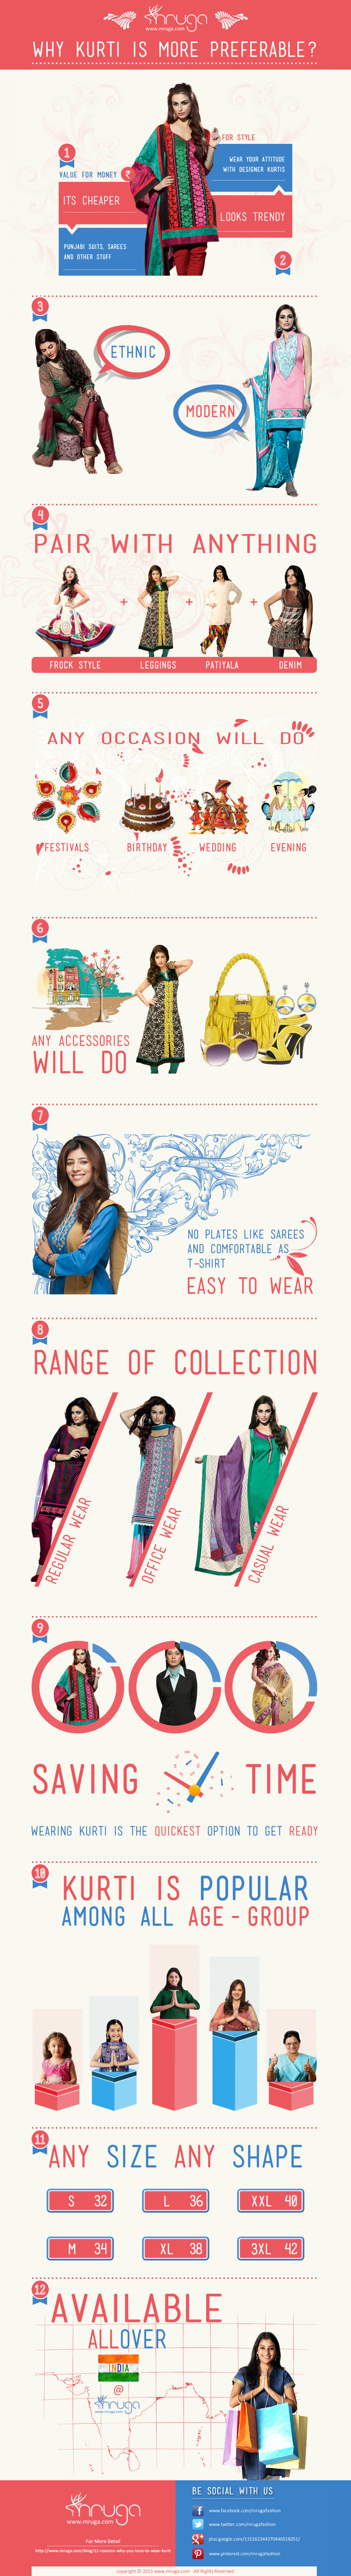 12 Reasons Why You Love To Wear Kurti Infographic